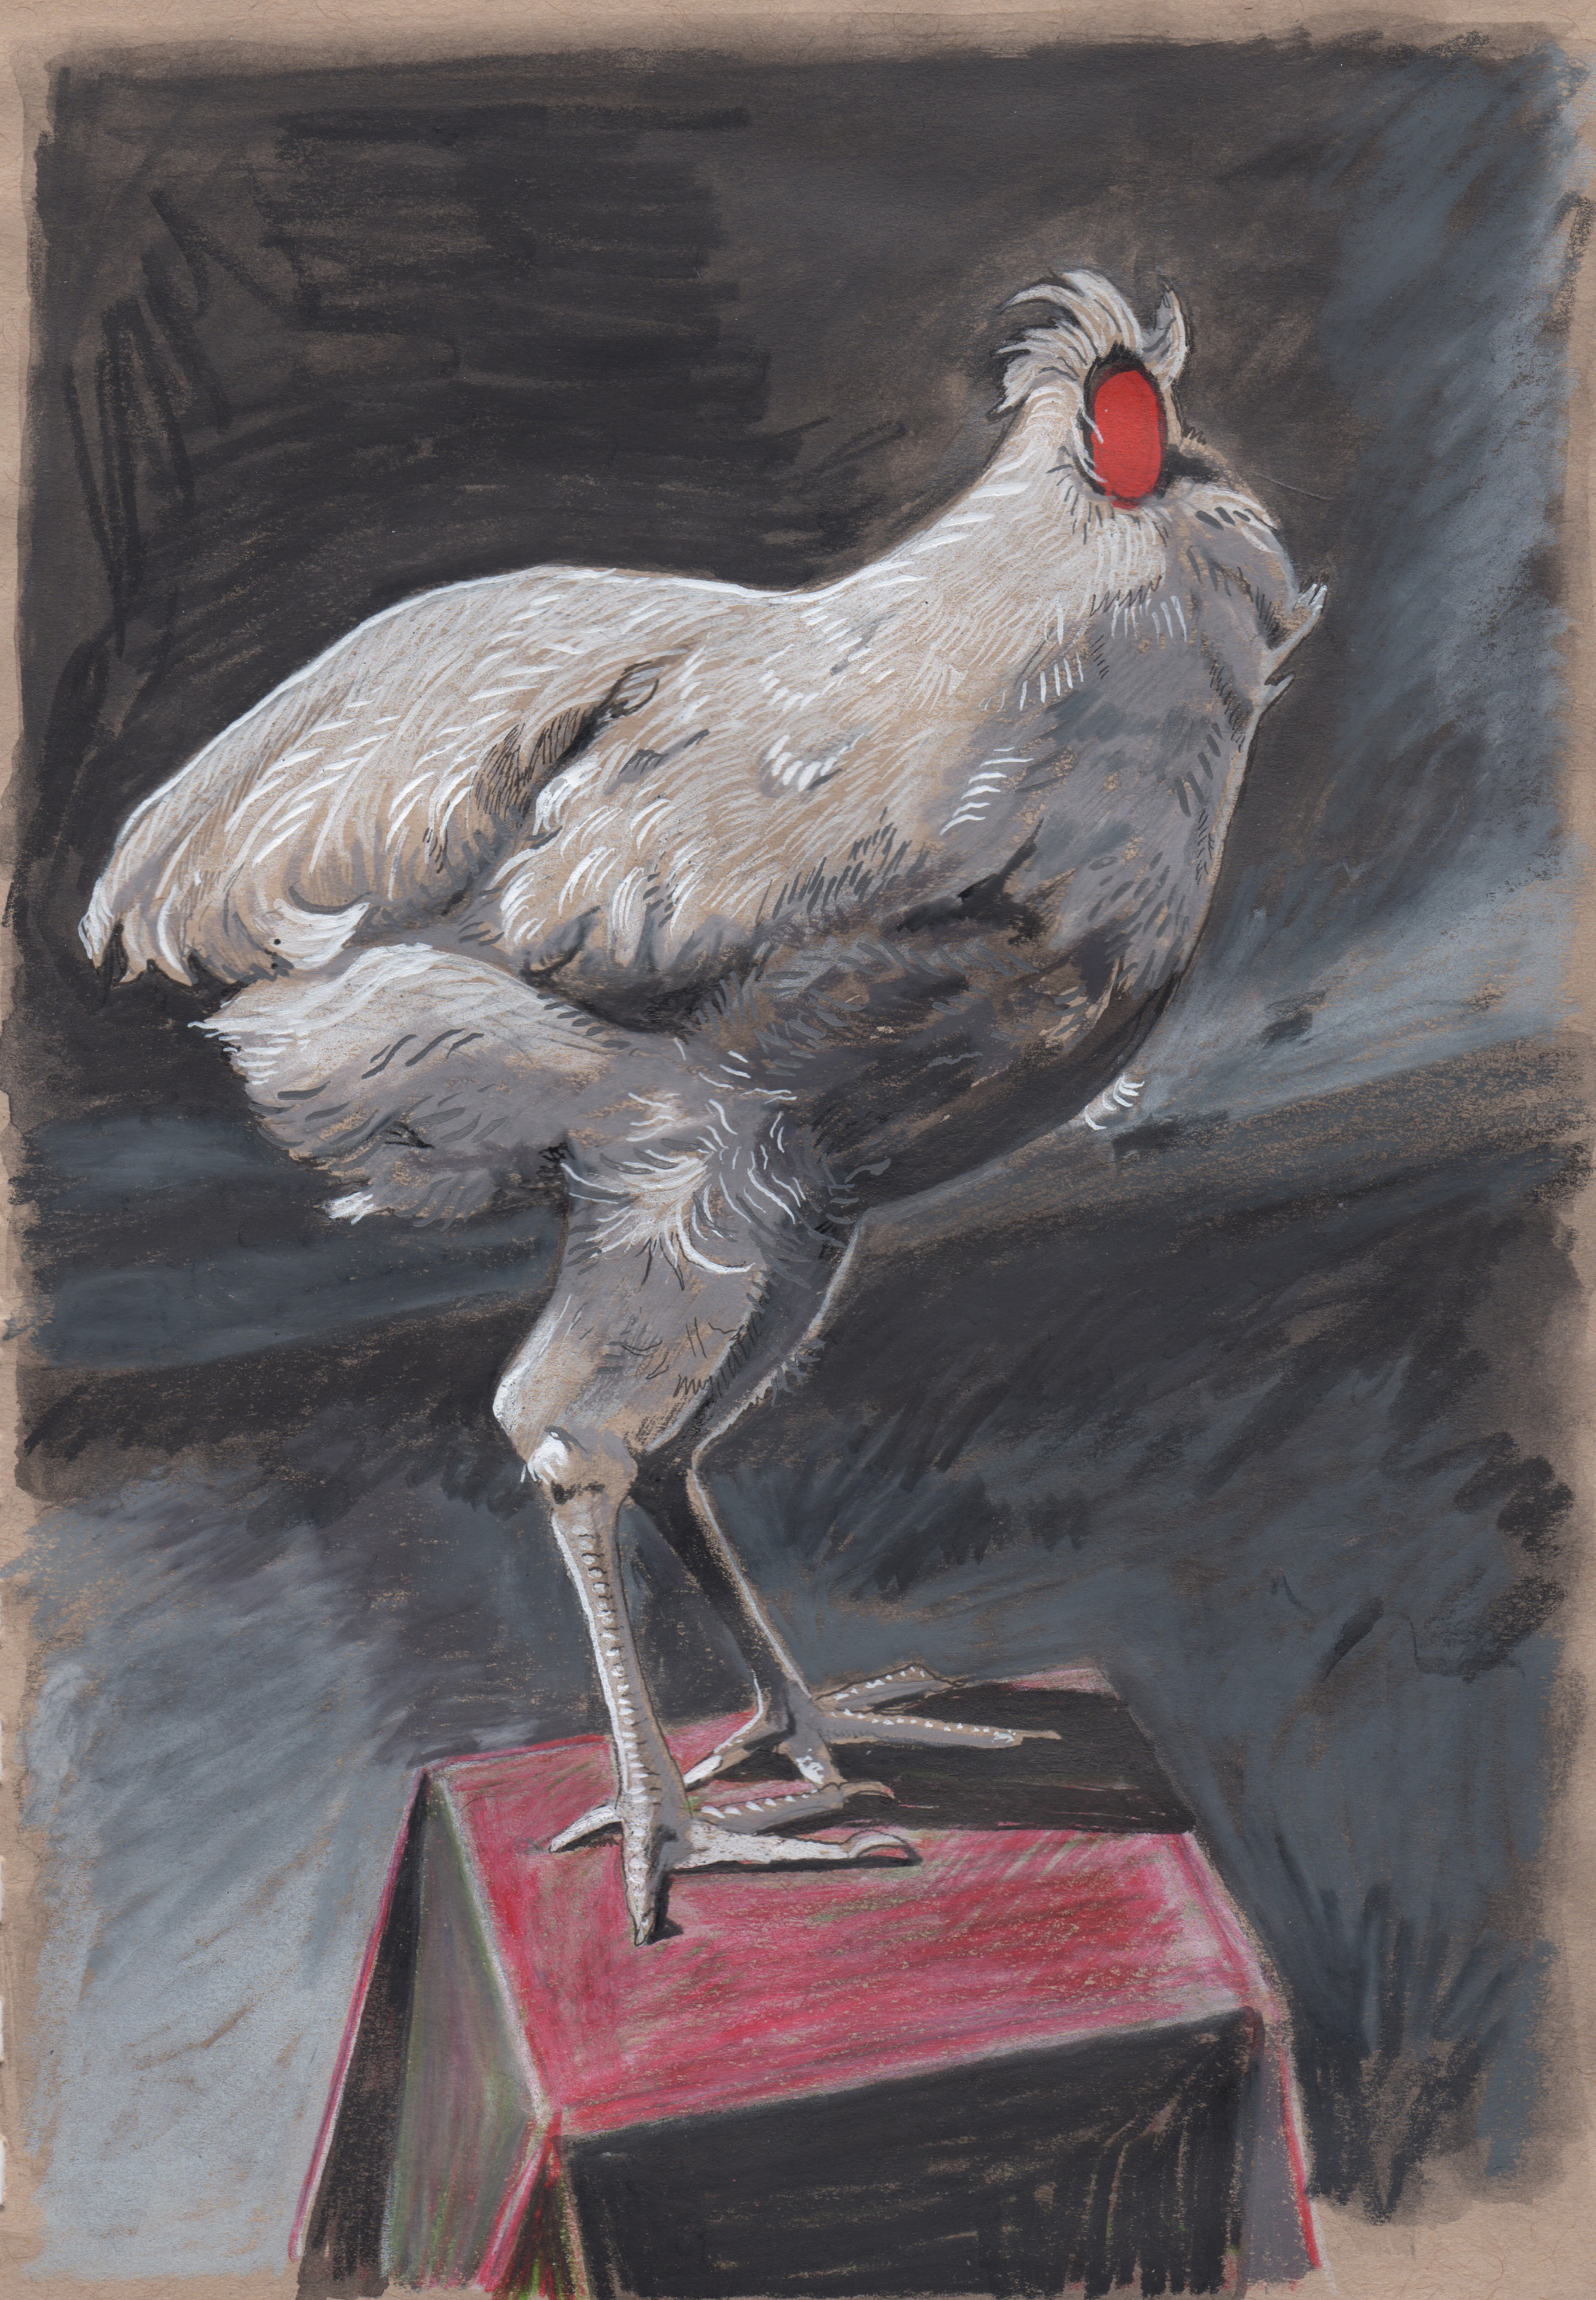 Headless Chicken,  2019 pencil on paper 6.9375 x 4.46875 inches